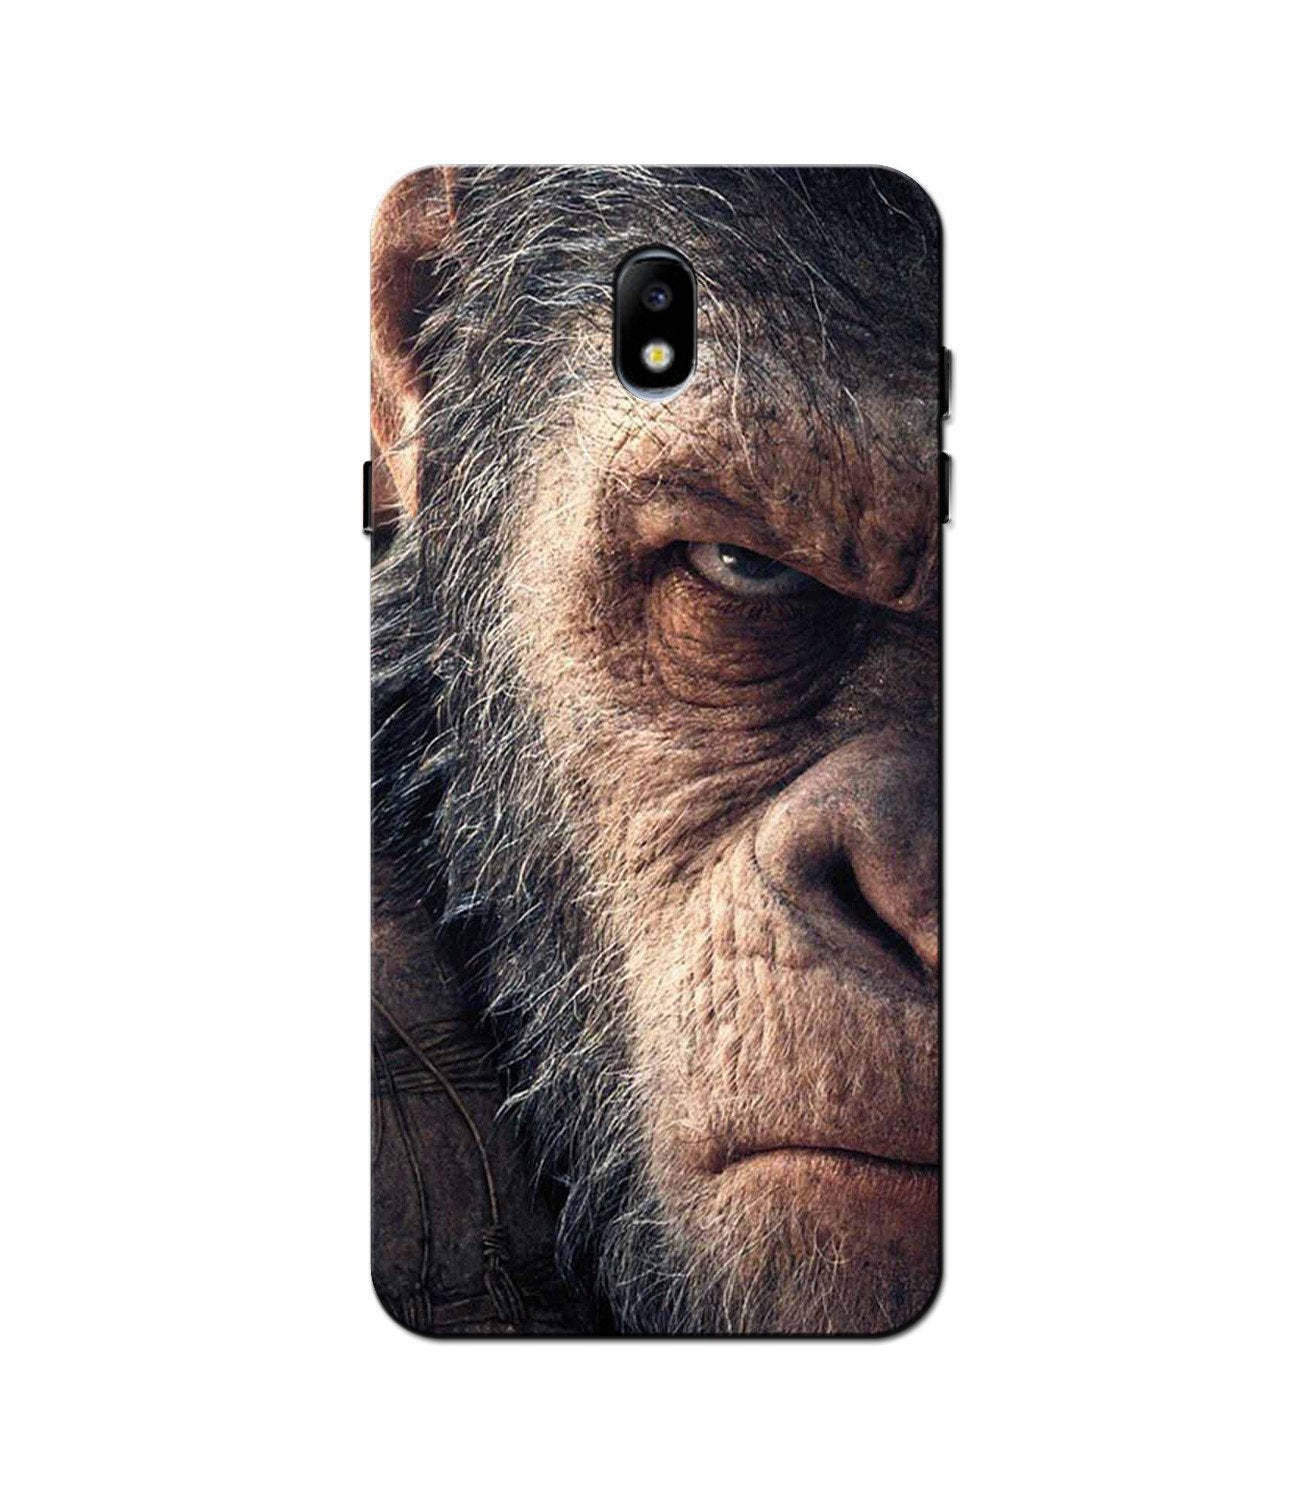 Angry Ape Mobile Back Case for Galaxy J5 Pro  (Design - 316)